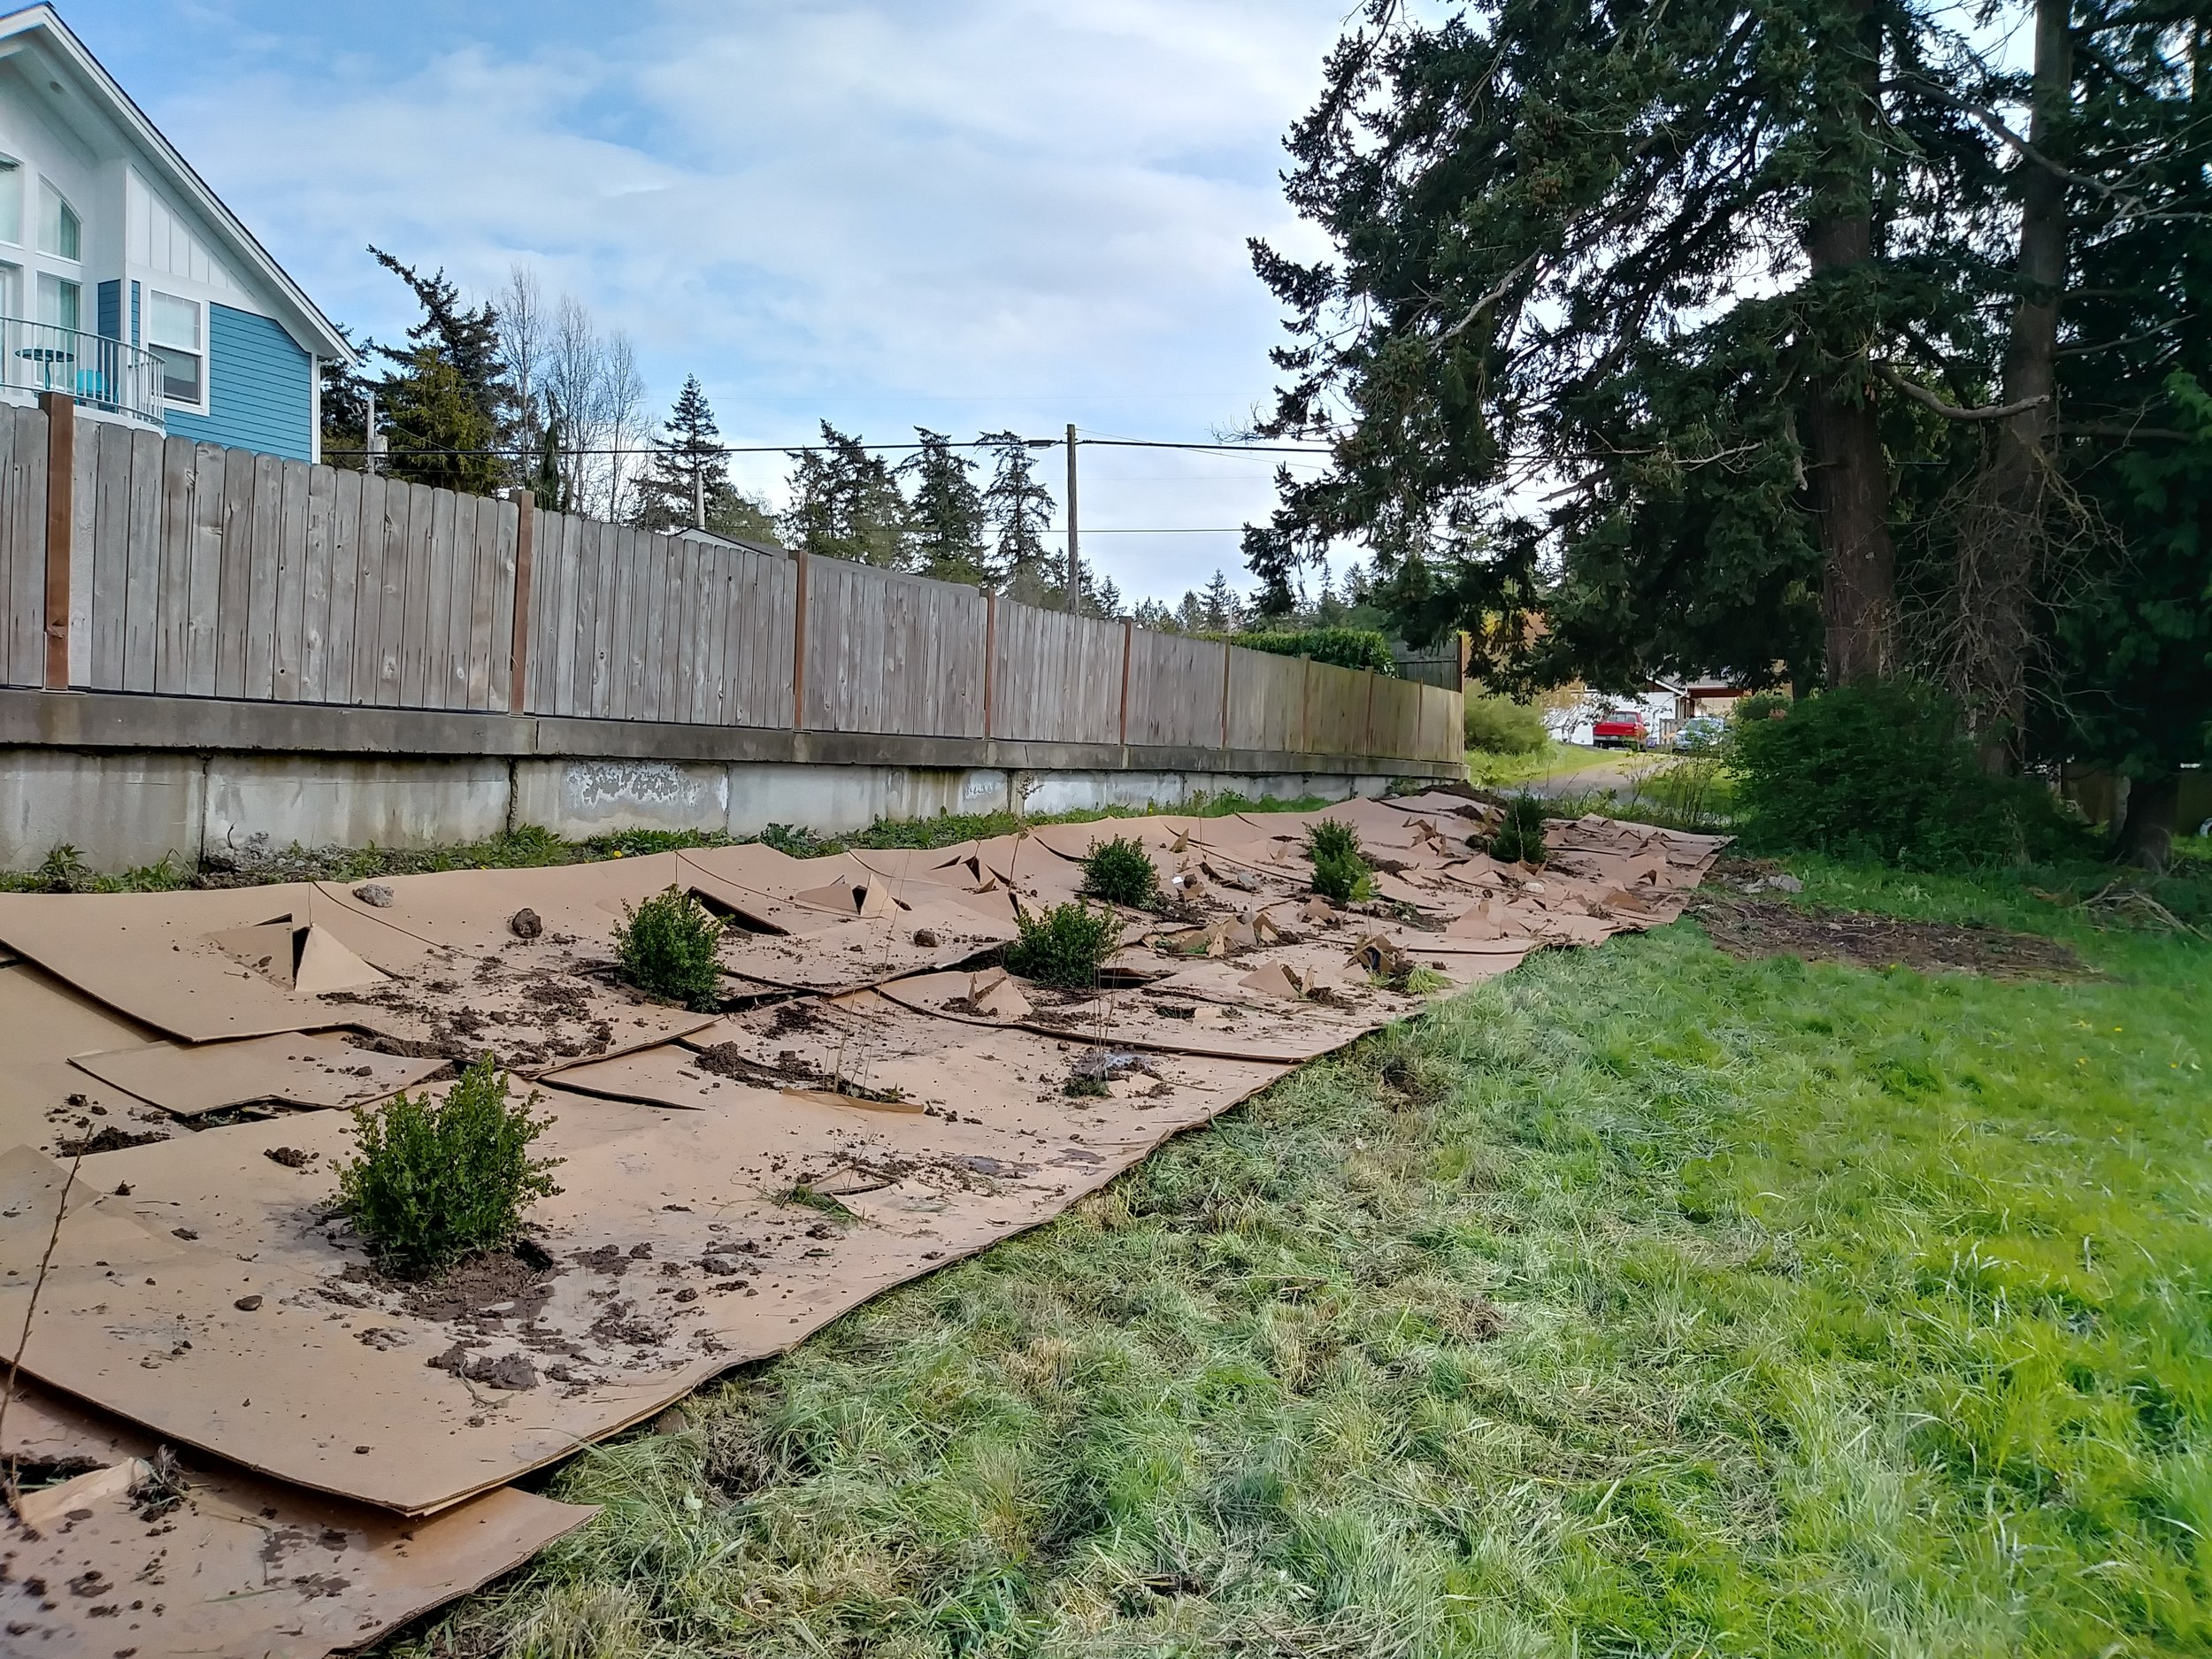 MID-WAY: Cardboard is used to cover the weeds. It will eventually break down and become part of the soil landscape.